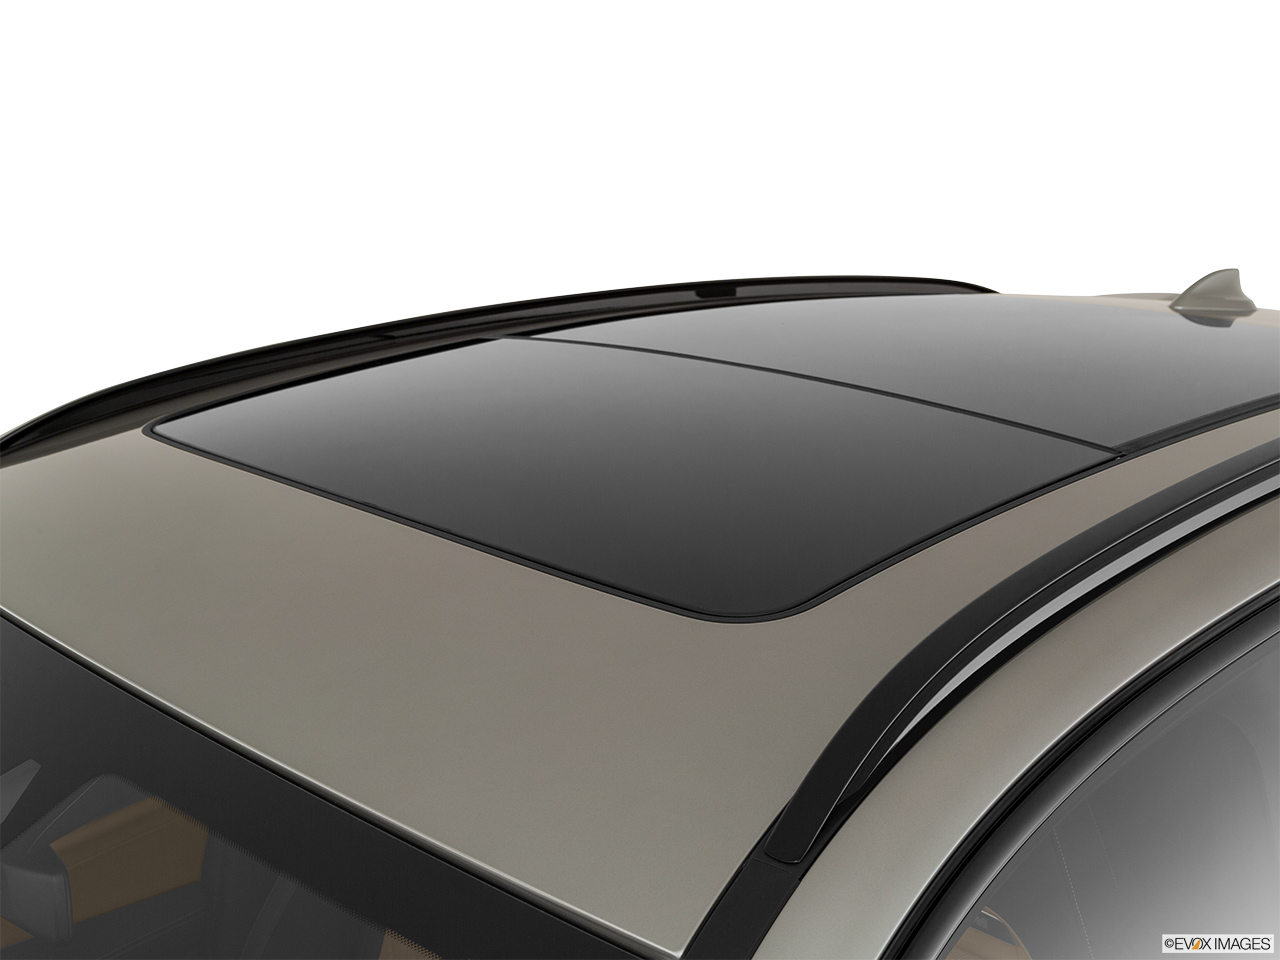 2020 BMW X3 M Competition Sunroof/moonroof.